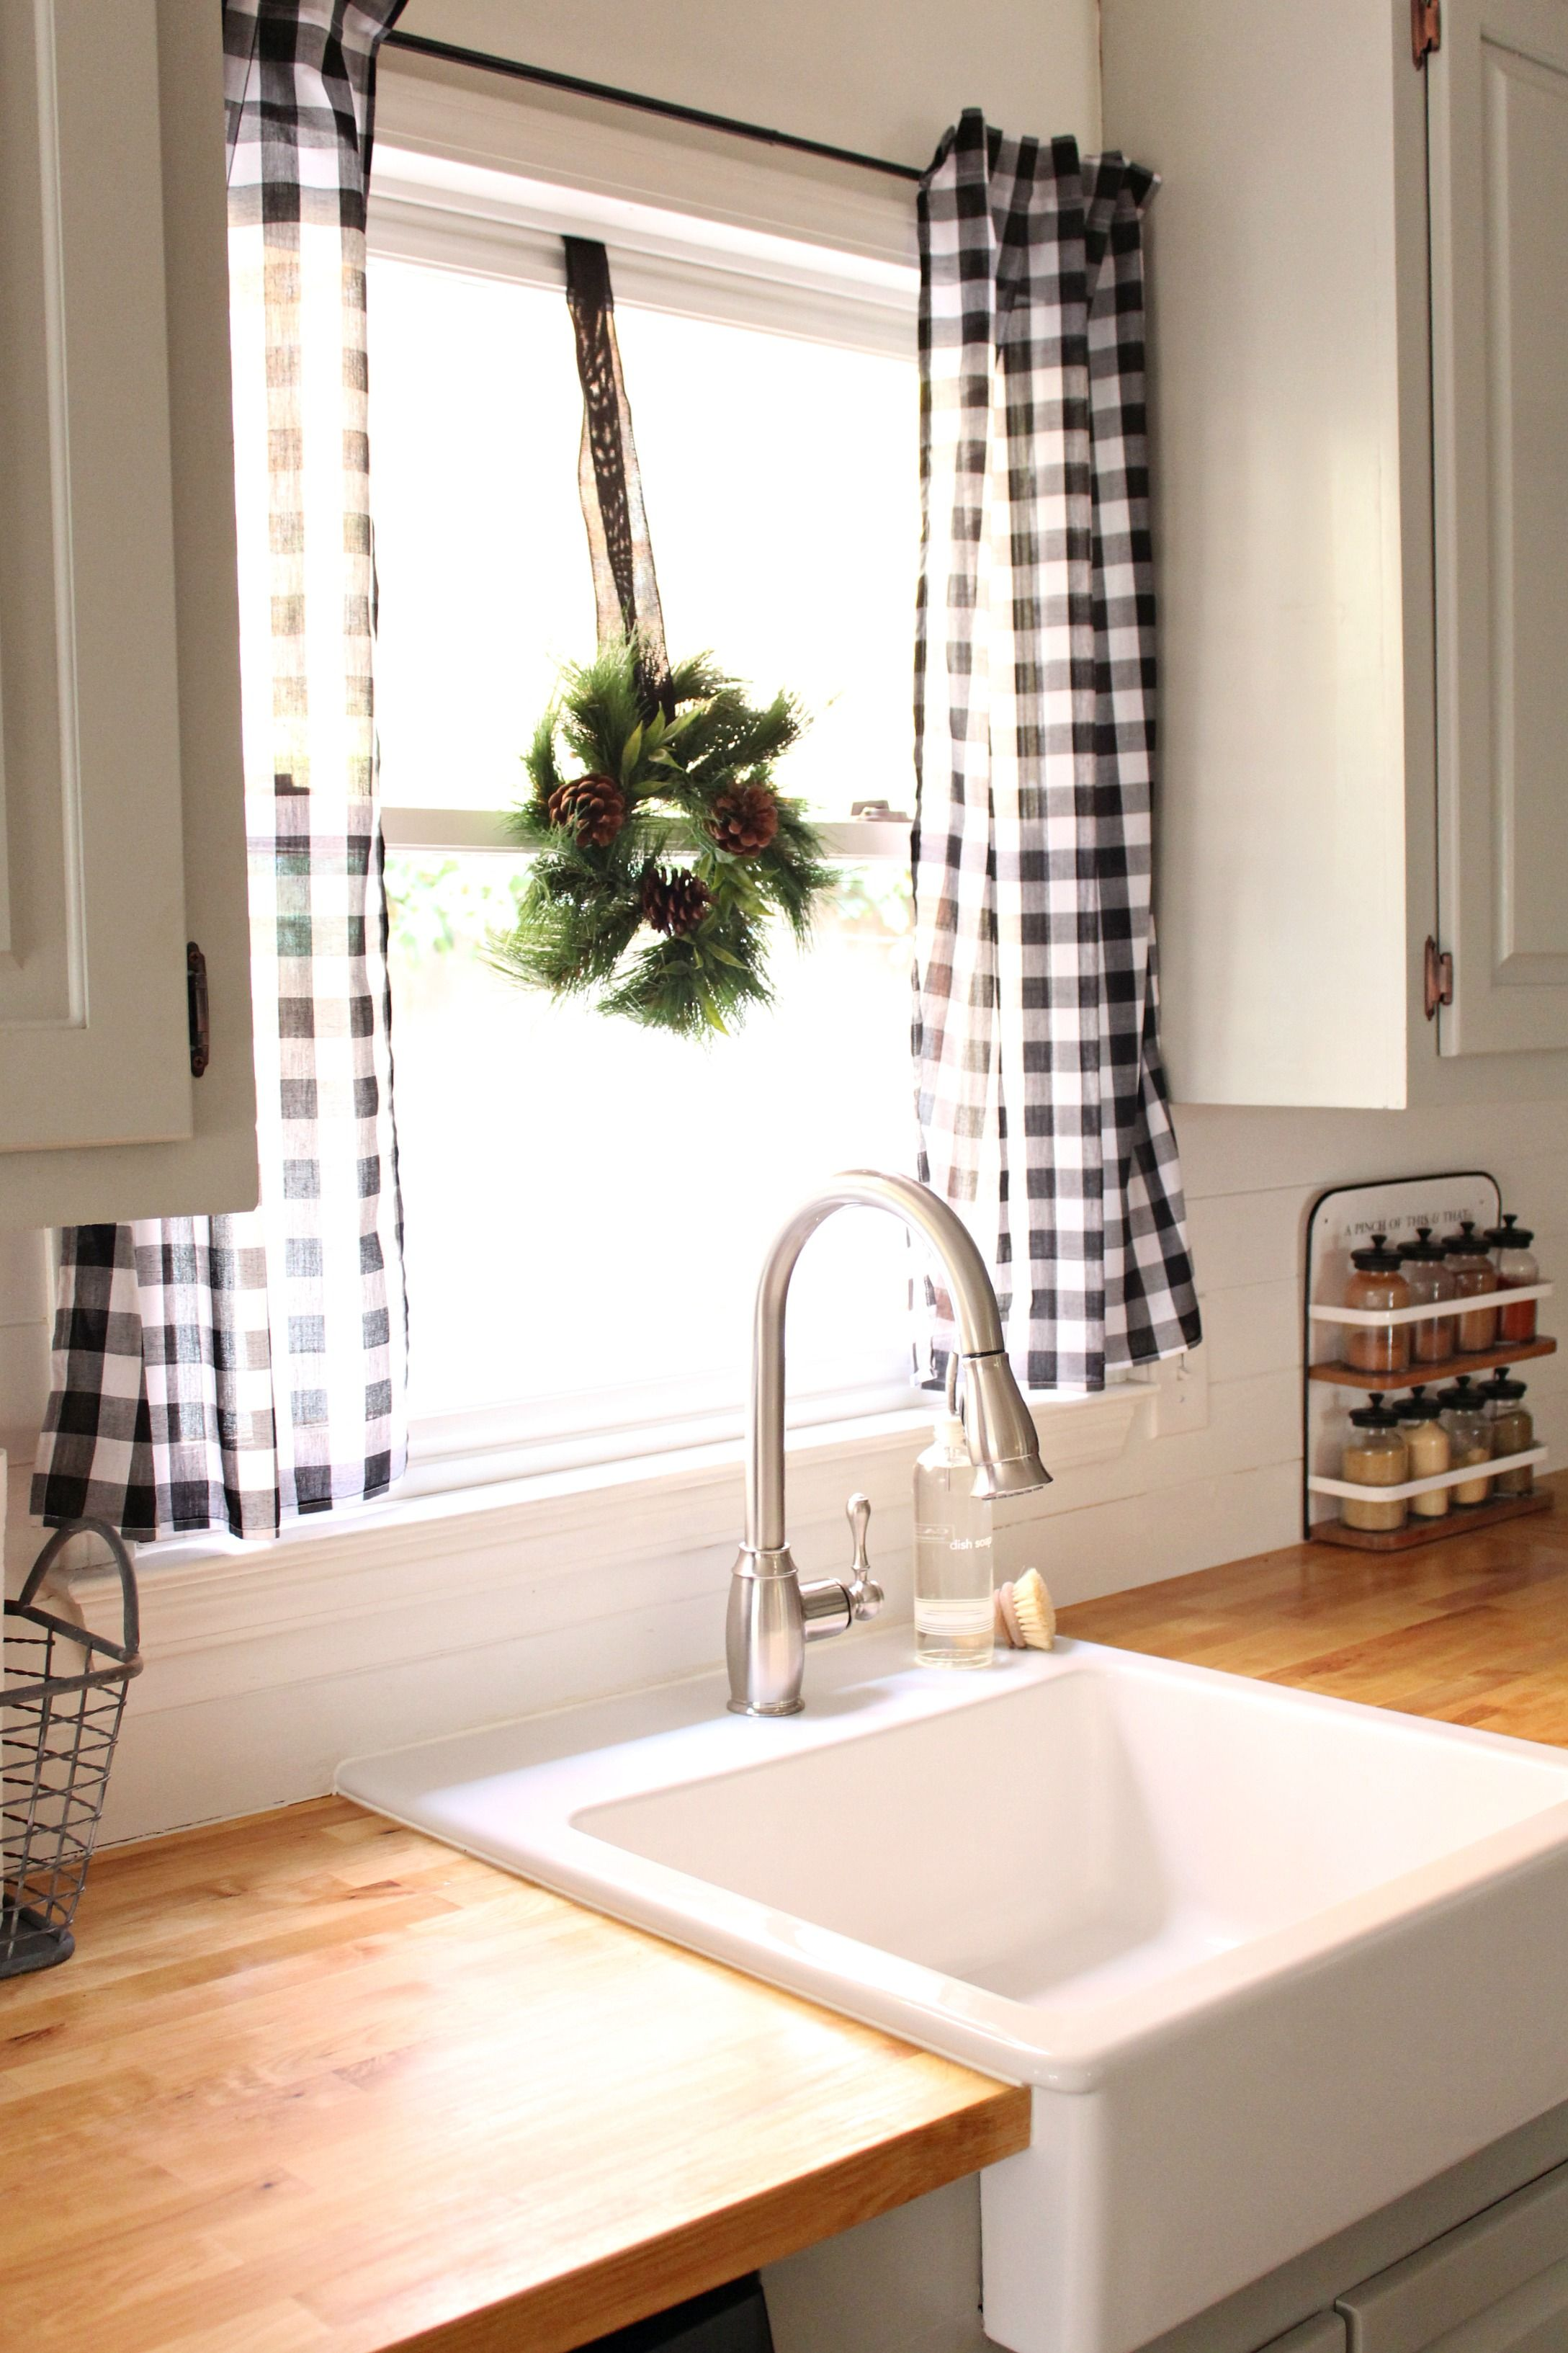 Kitchen Drapes Table And Chairs With Wheels Love The Black White Buffalo Check Curtains Pace